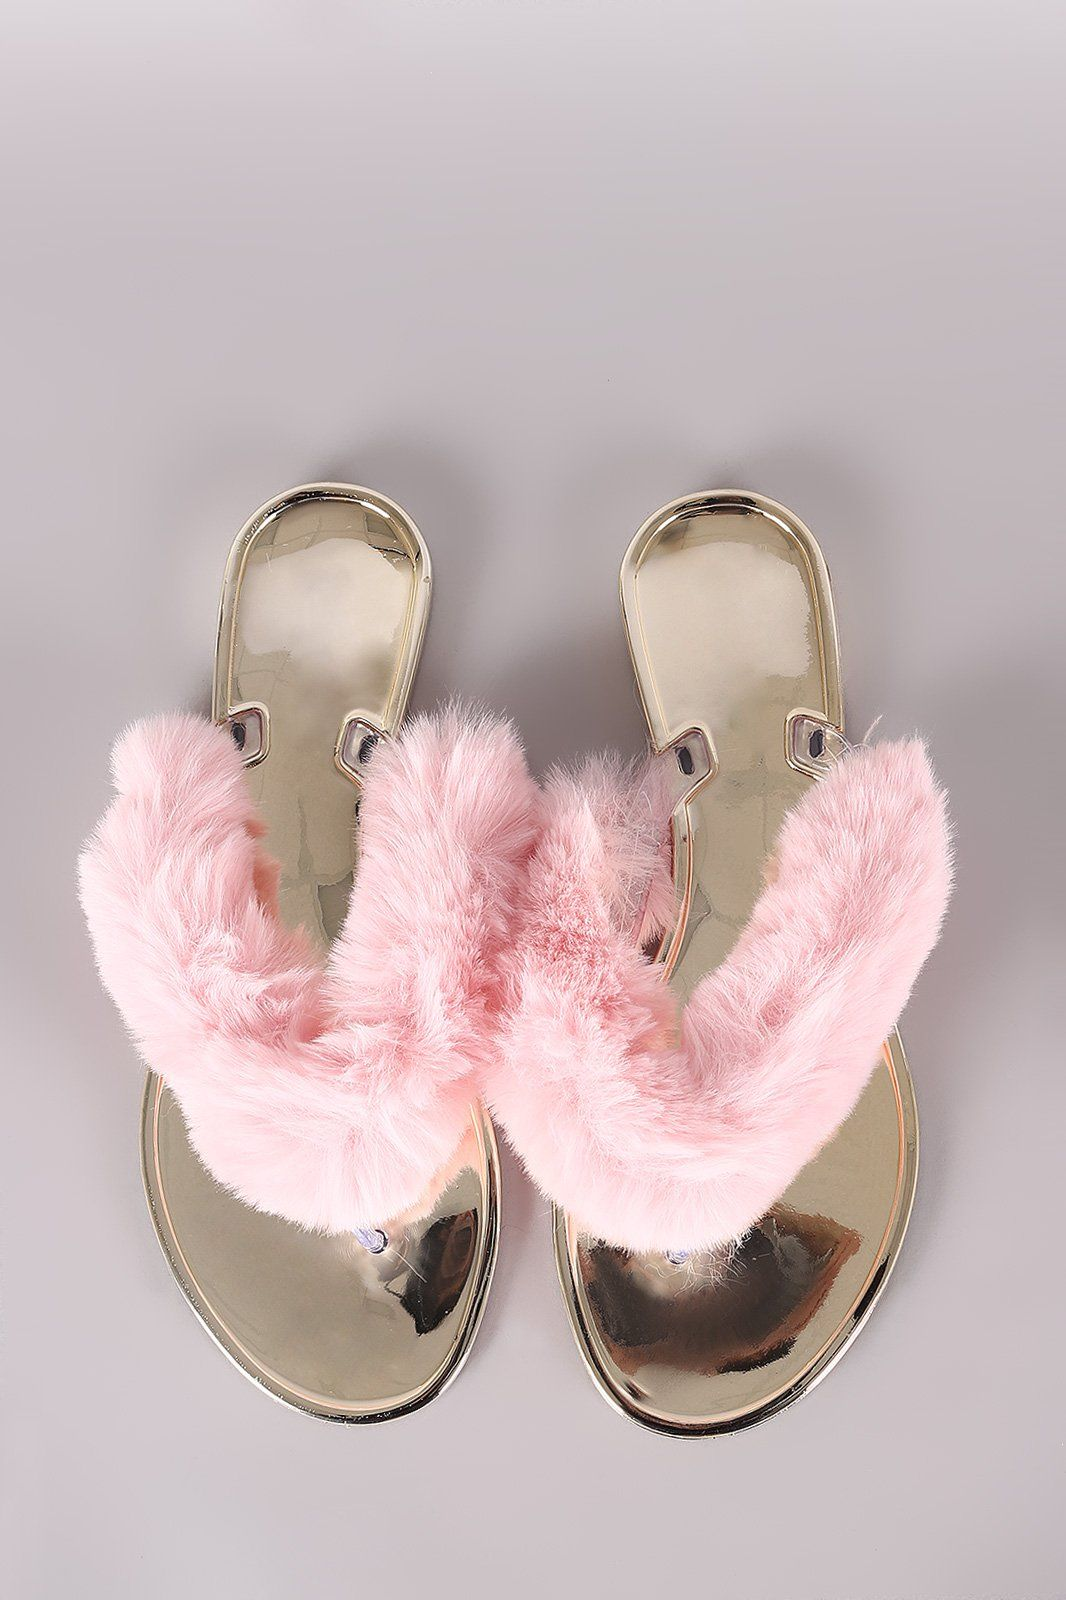 b7ddfff3fb6 We Just Lov Fuzzy Furry FlipFlops Sandals Get m B4 They er Gone ADD TO BAG  BOW‼ Bamboo Faux Fur Thong Jelly Sandal - Shoes